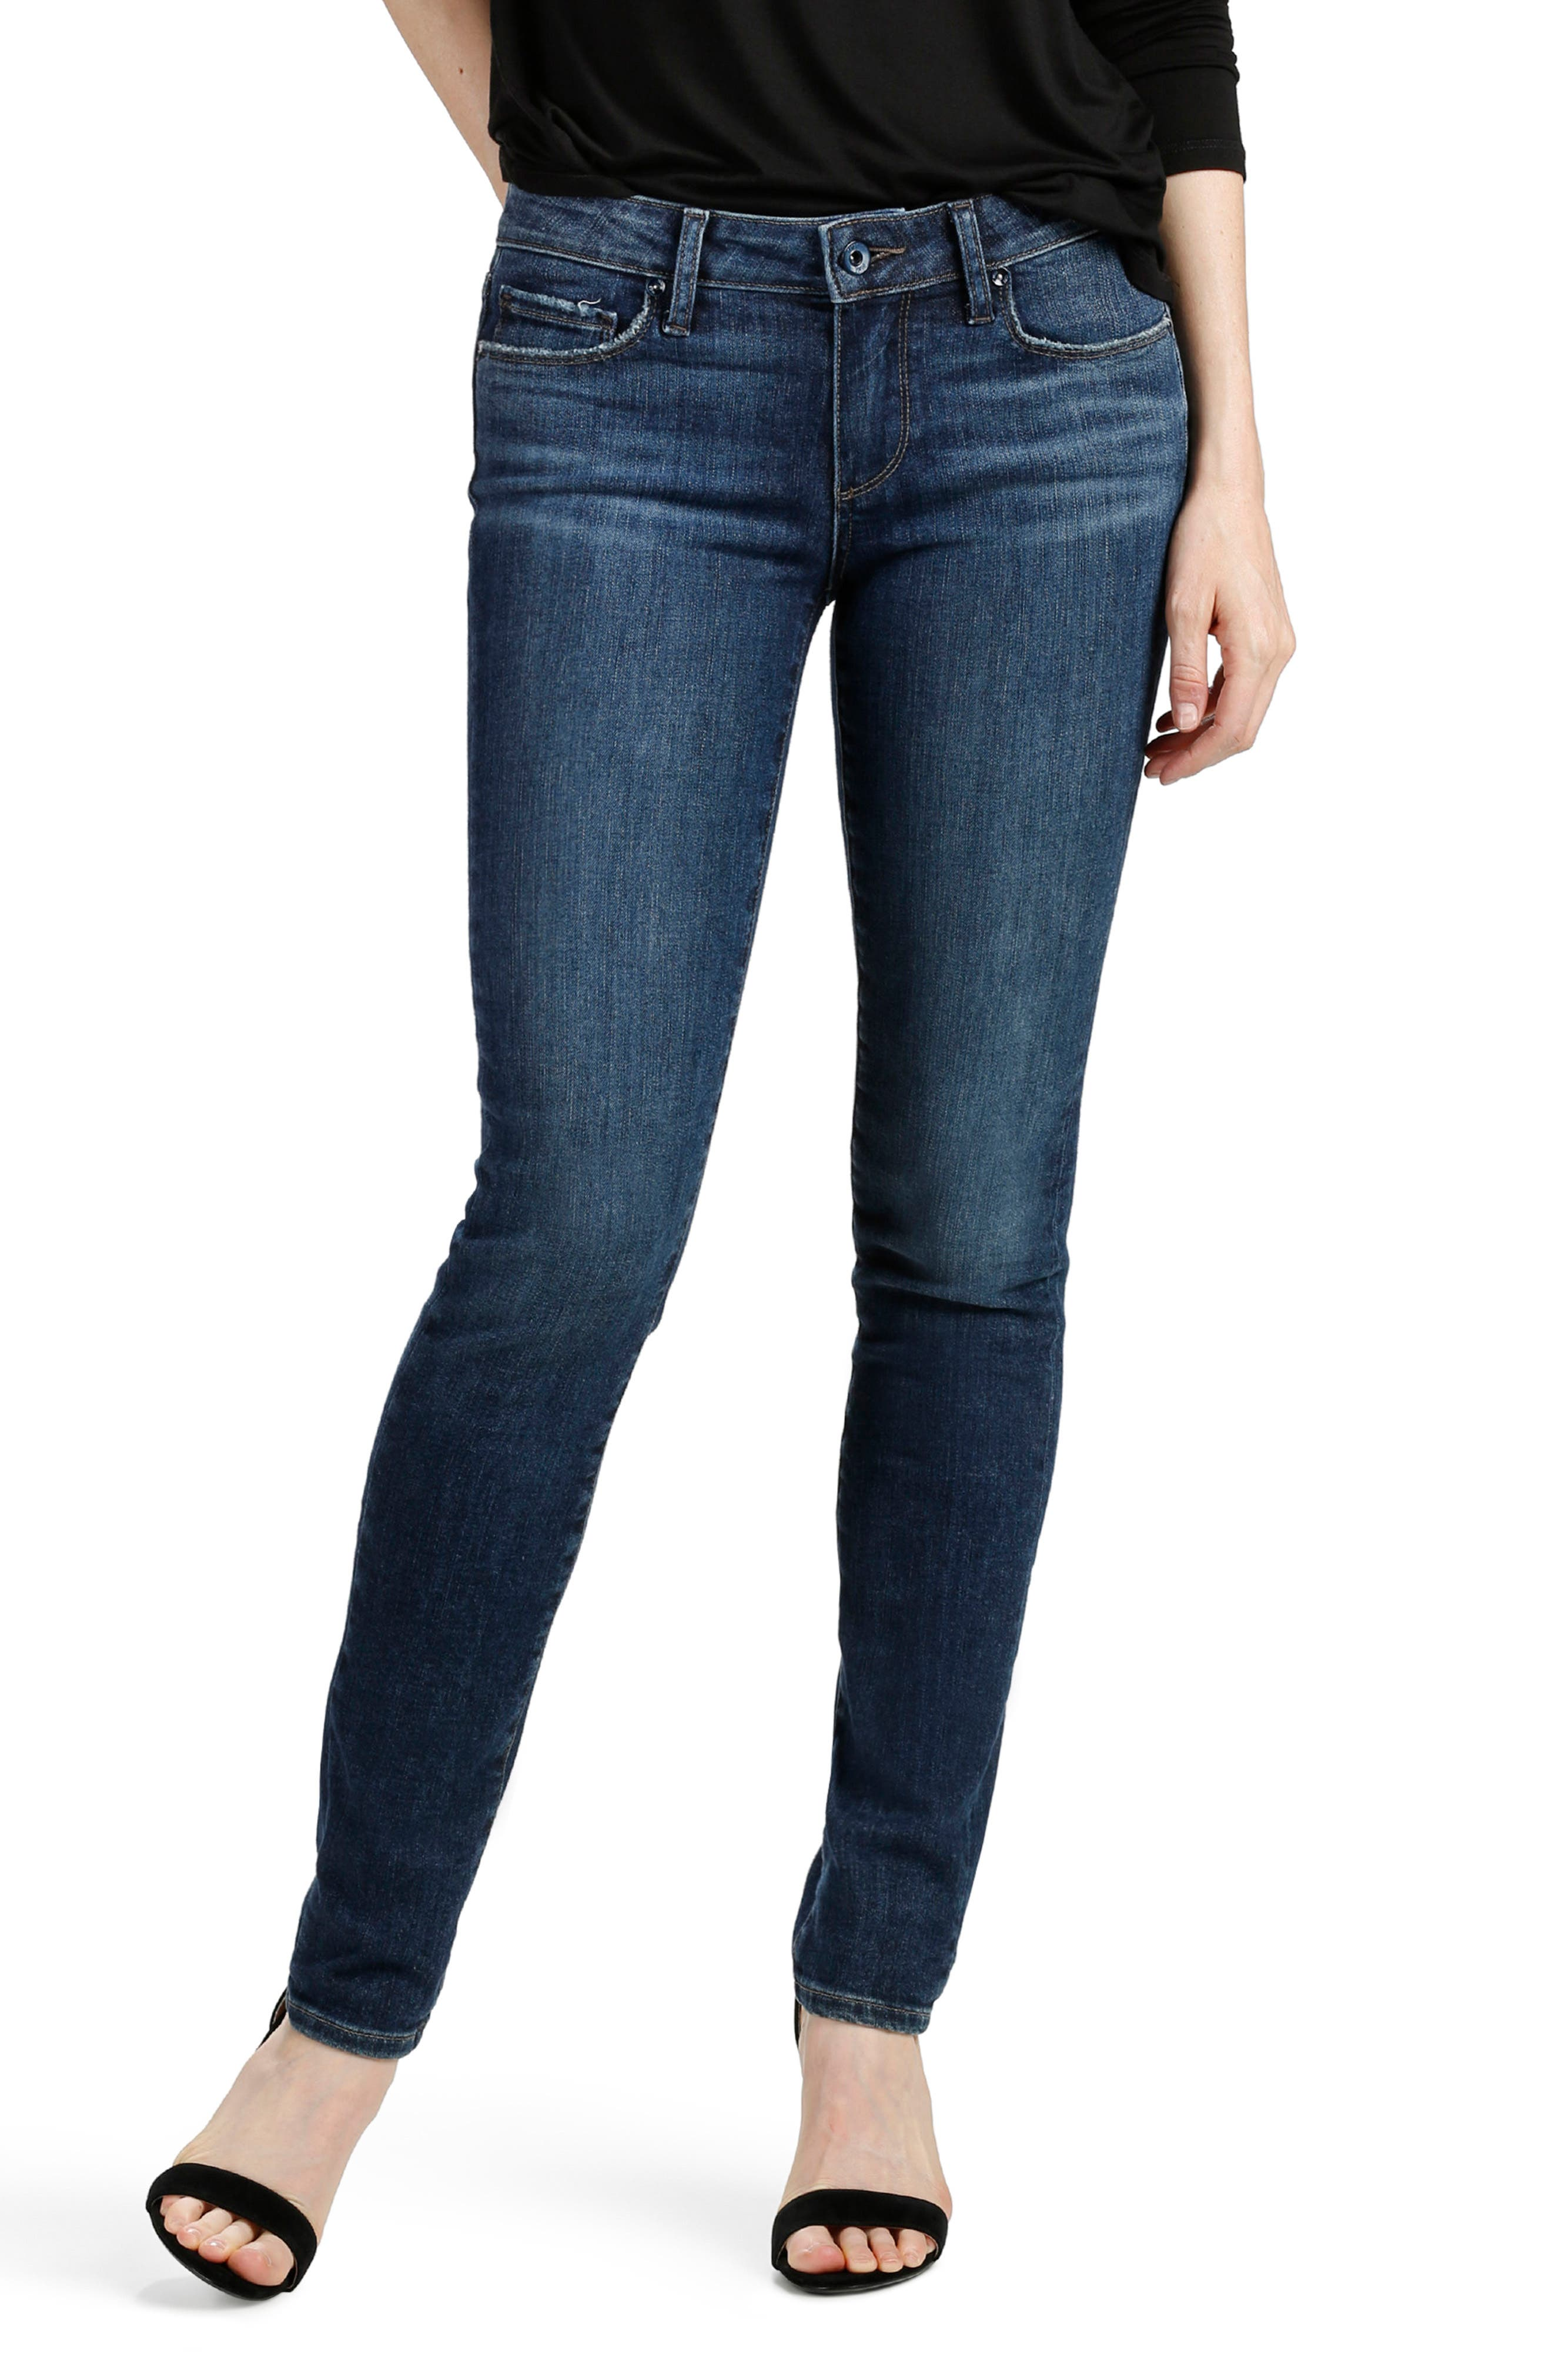 Transcend - Skyline Skinny Jeans,                             Main thumbnail 1, color,                             400